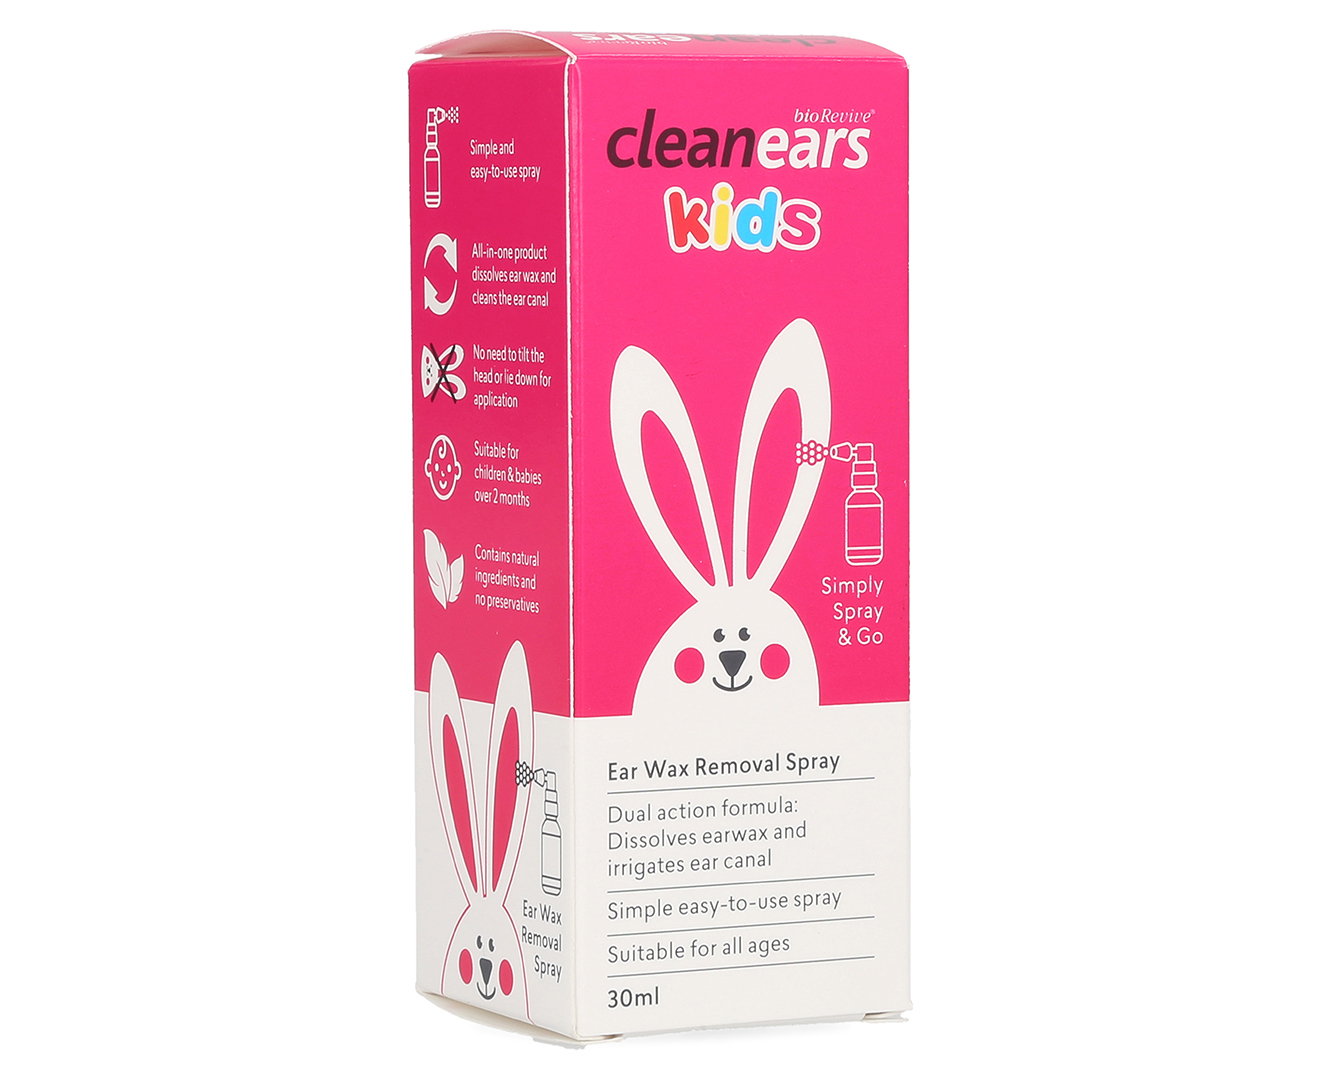 Xịt Tan Ráy Tai Clean Ears Kids 30ml - Úc